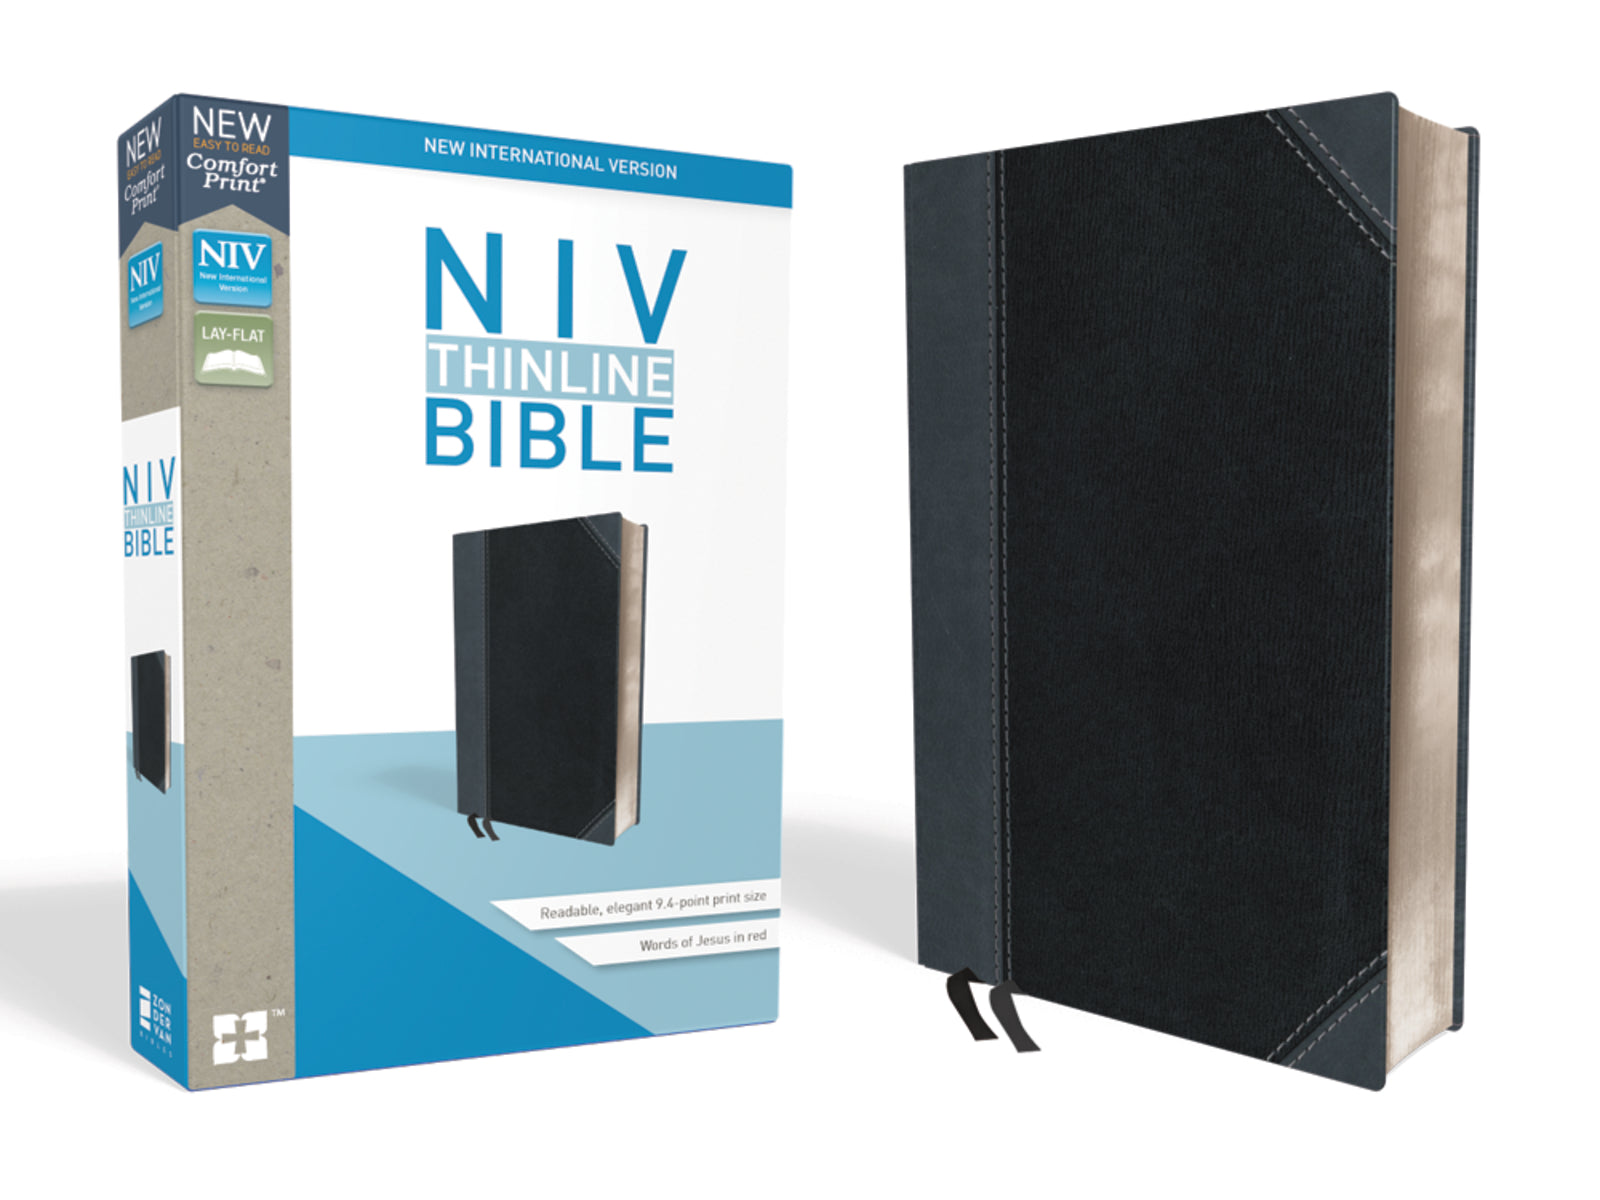 NIV Thinline Bible Comfort Print-Black/Gray